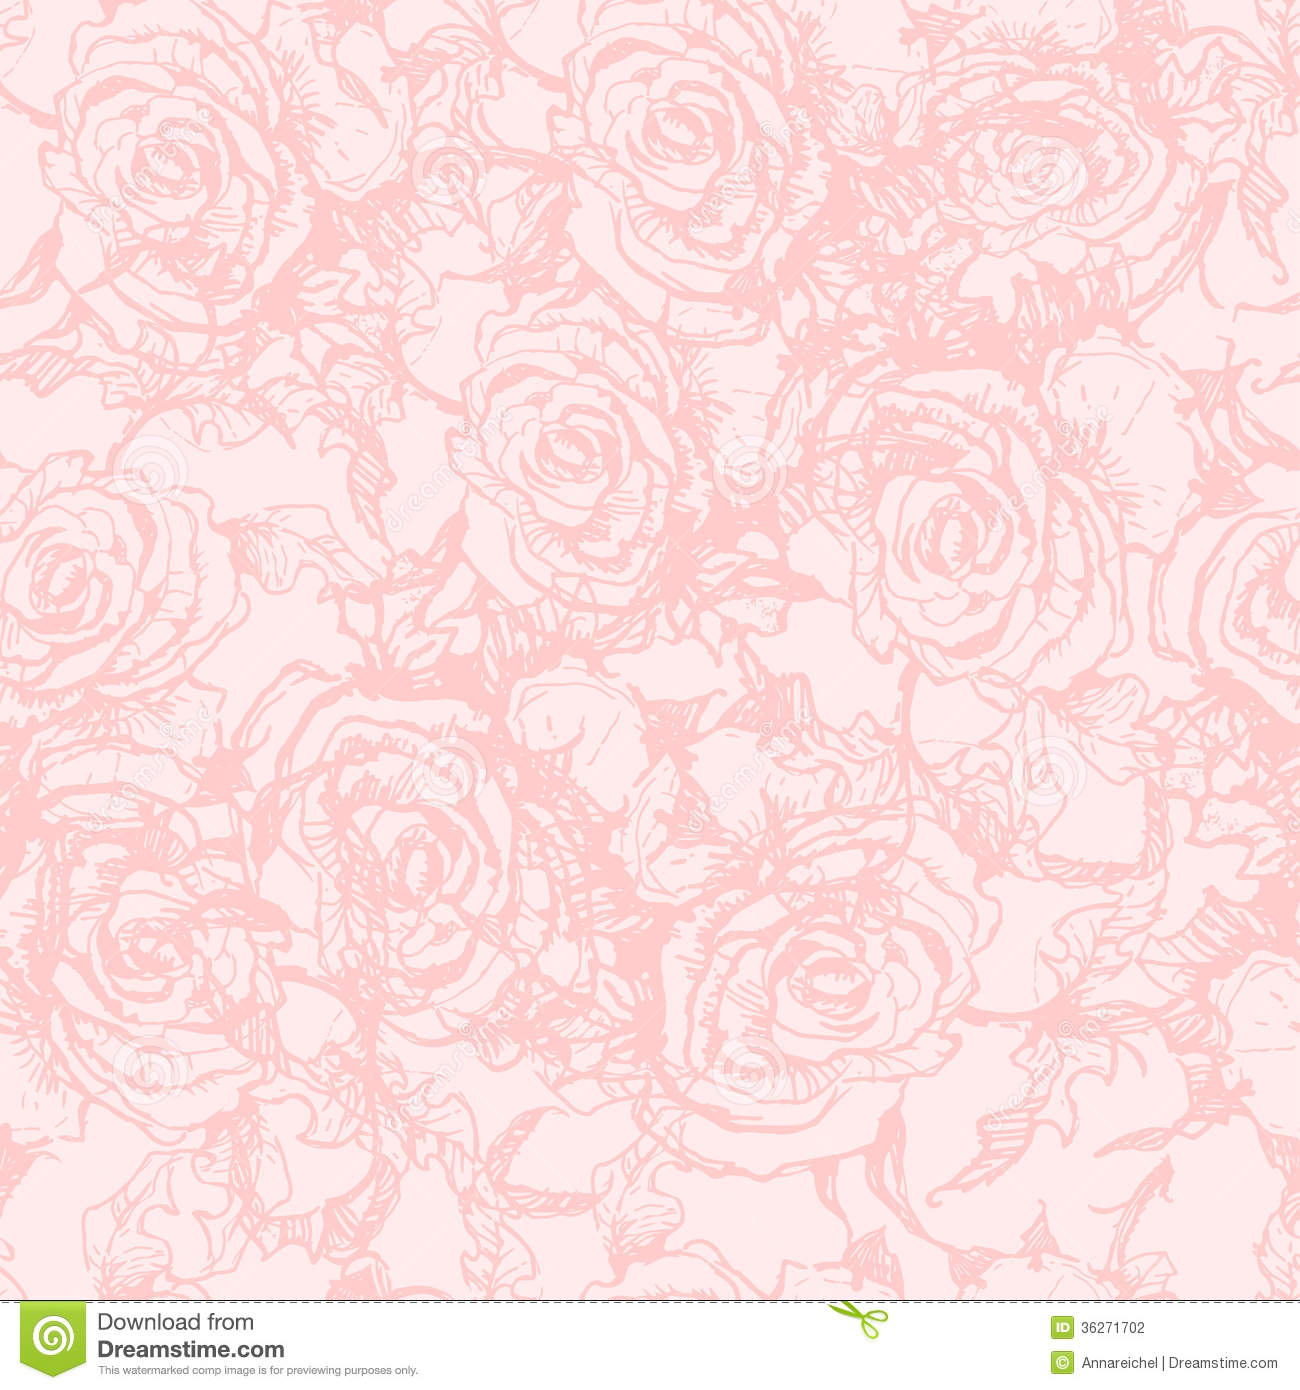 rose watermark paper Sepia rose stationery sepia rose stationery stock illustration mail paper with rose watermark save comp similar illustrations see all.